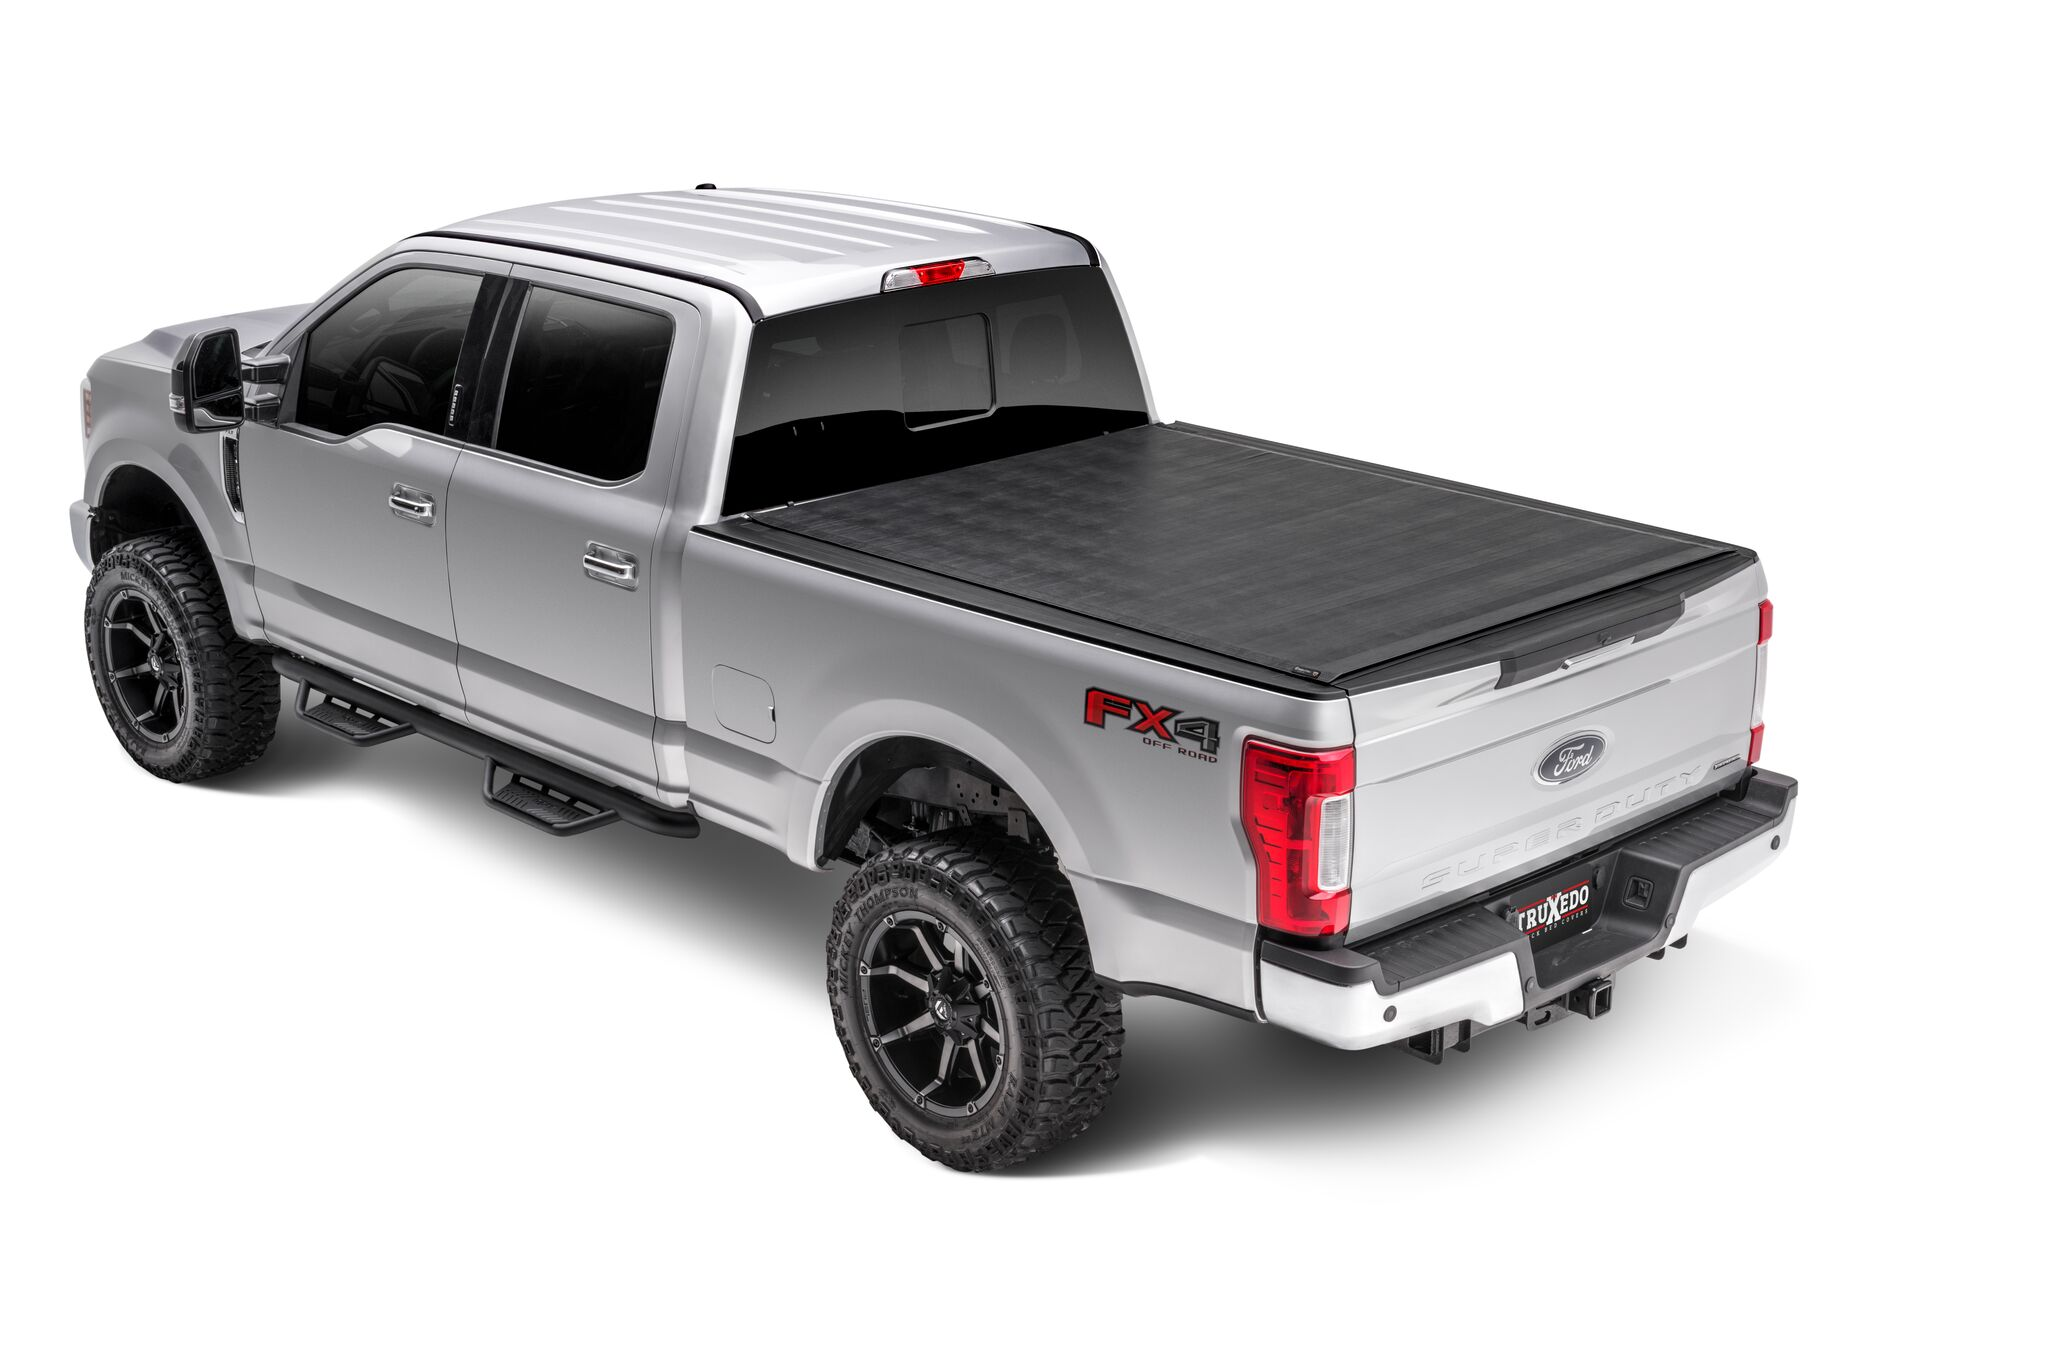 Truxedo Truck Bed Covers - Sentry Vinyl